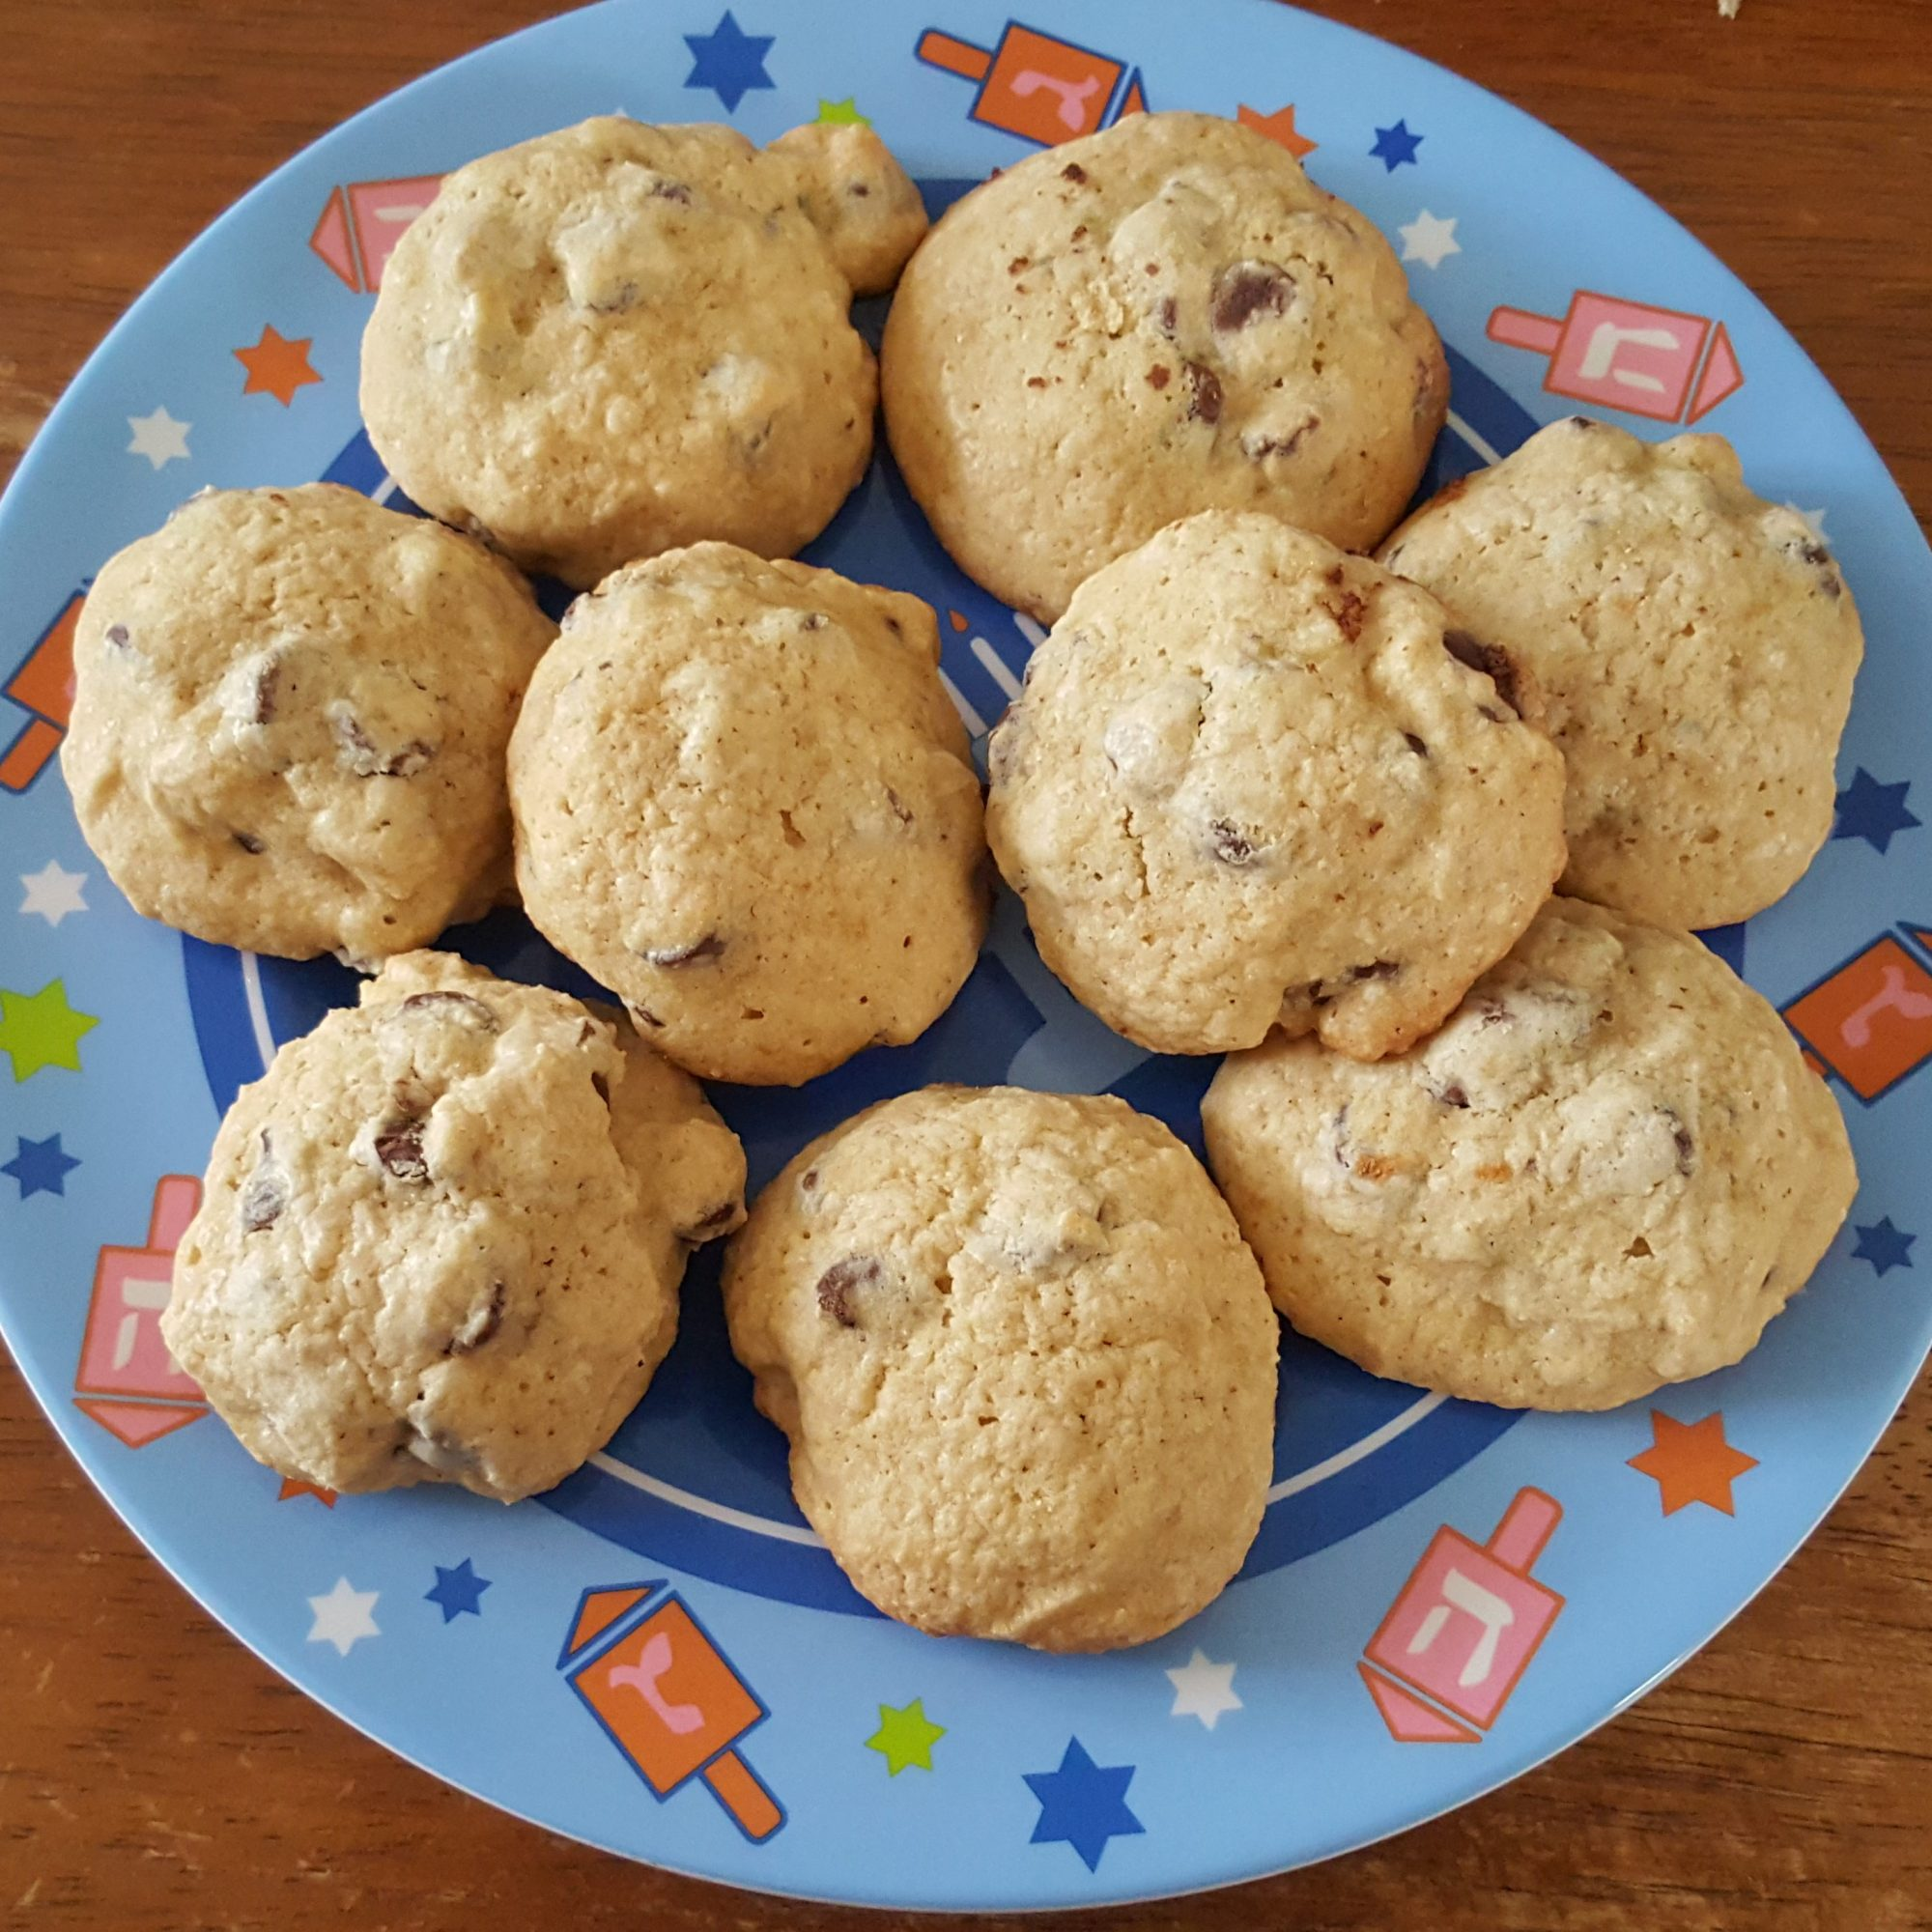 a plate of Passover chocolate chip cookies made with matzo cake meal